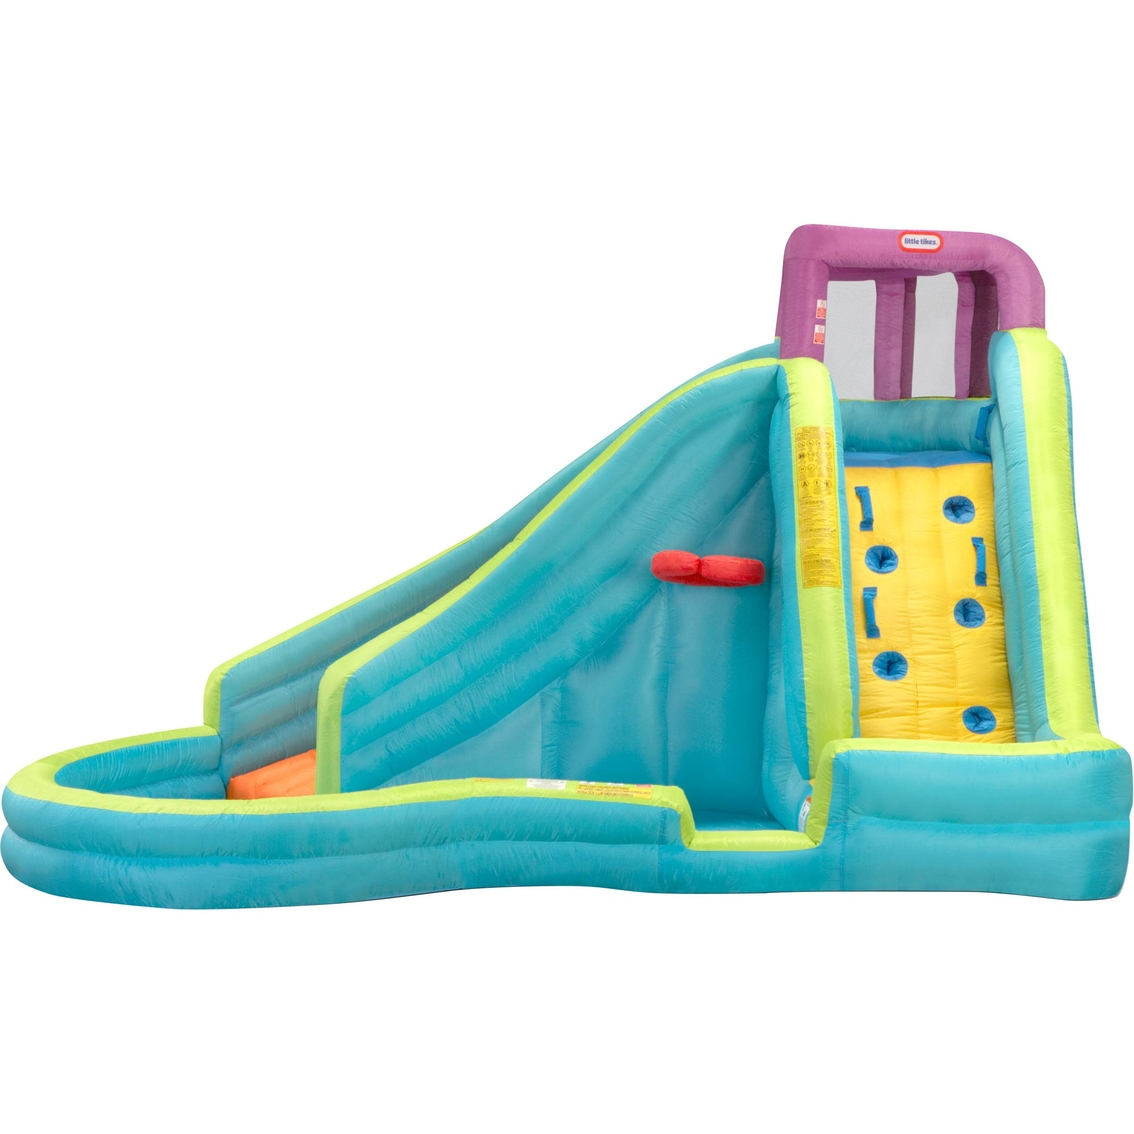 Slam 'n Curve Slide by Little Tikes